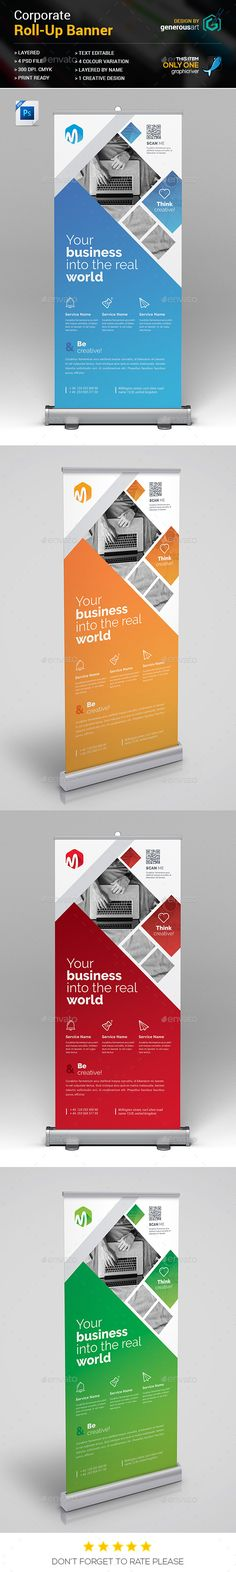 Roll-Up Banner Template PSD More